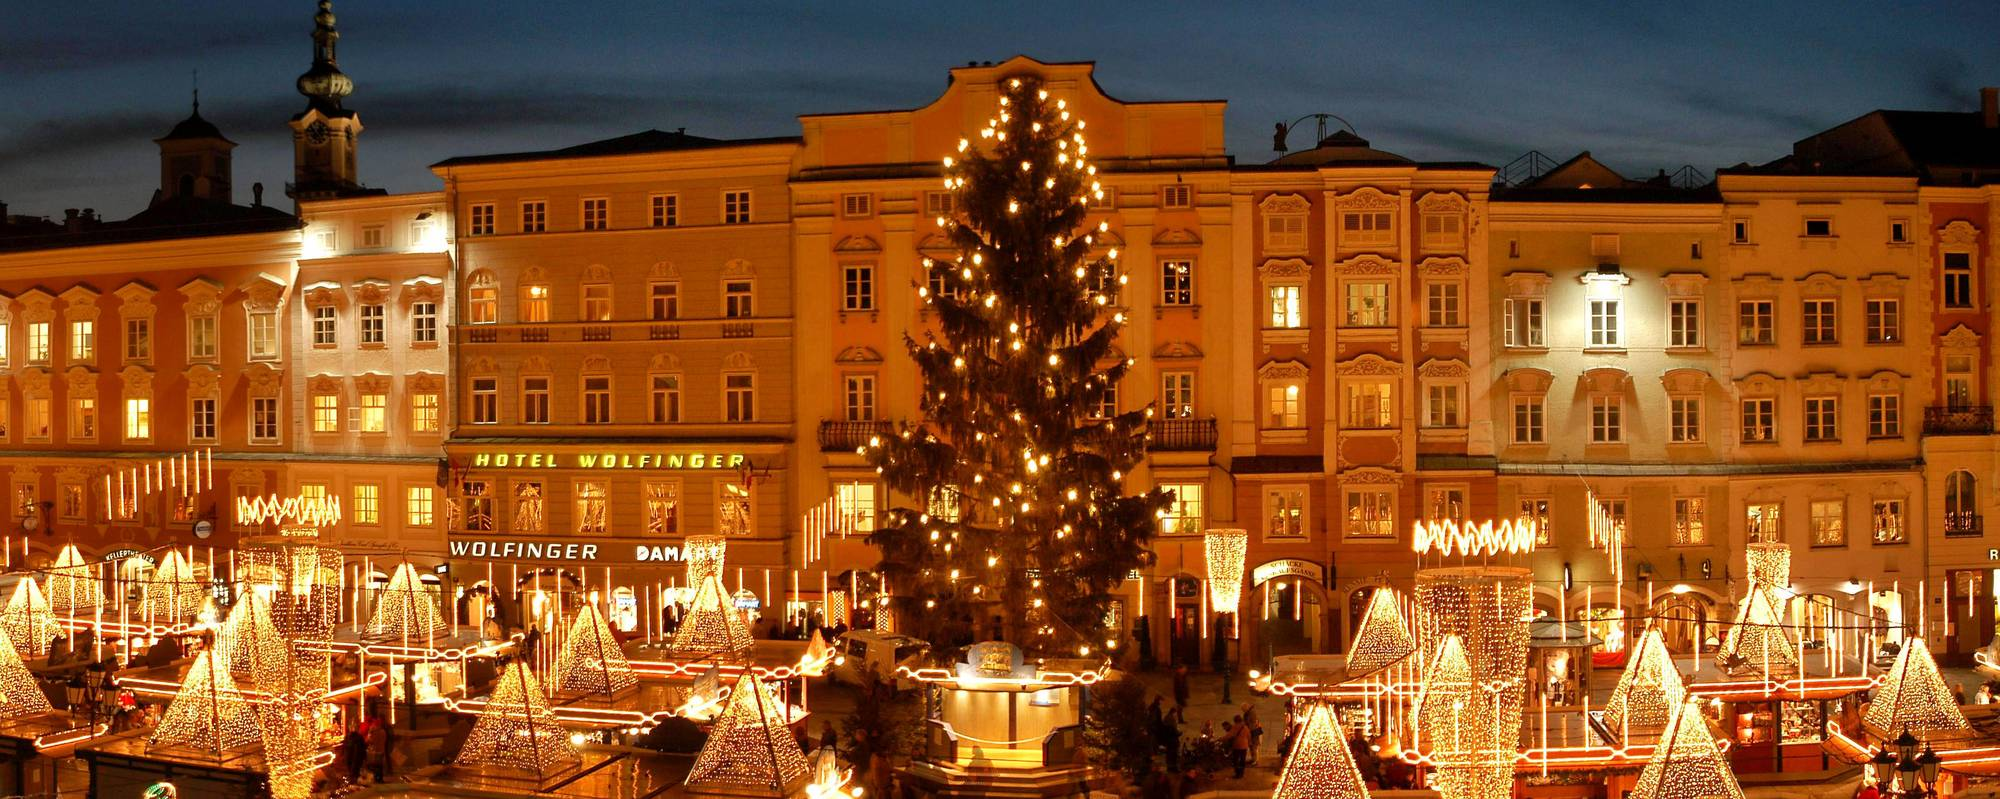 Christmas Cruises.Luftner Cruises River Cruises In Europe Christmas Cruise